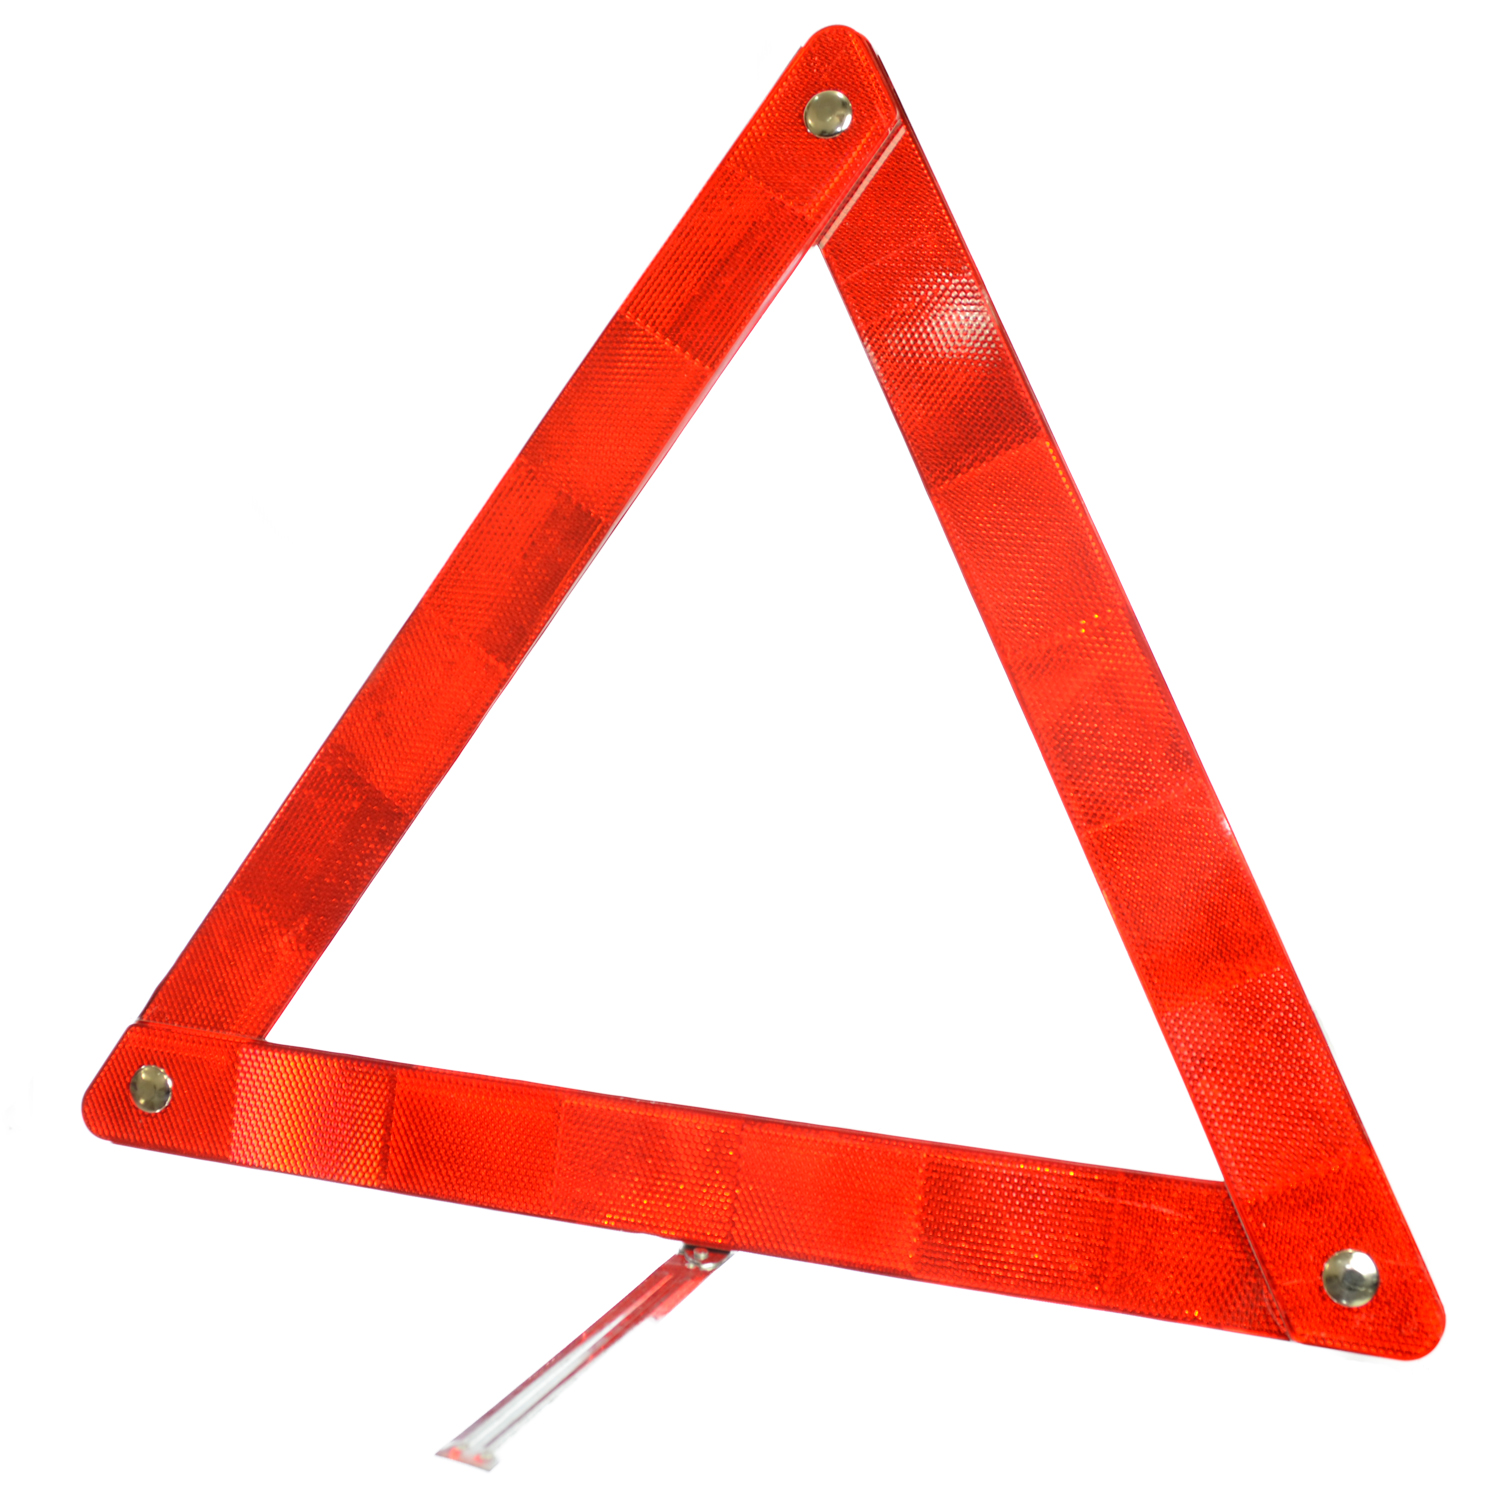 Majic Triangle Warning Reflector Alert Motorists in a Emergency or Tire Change